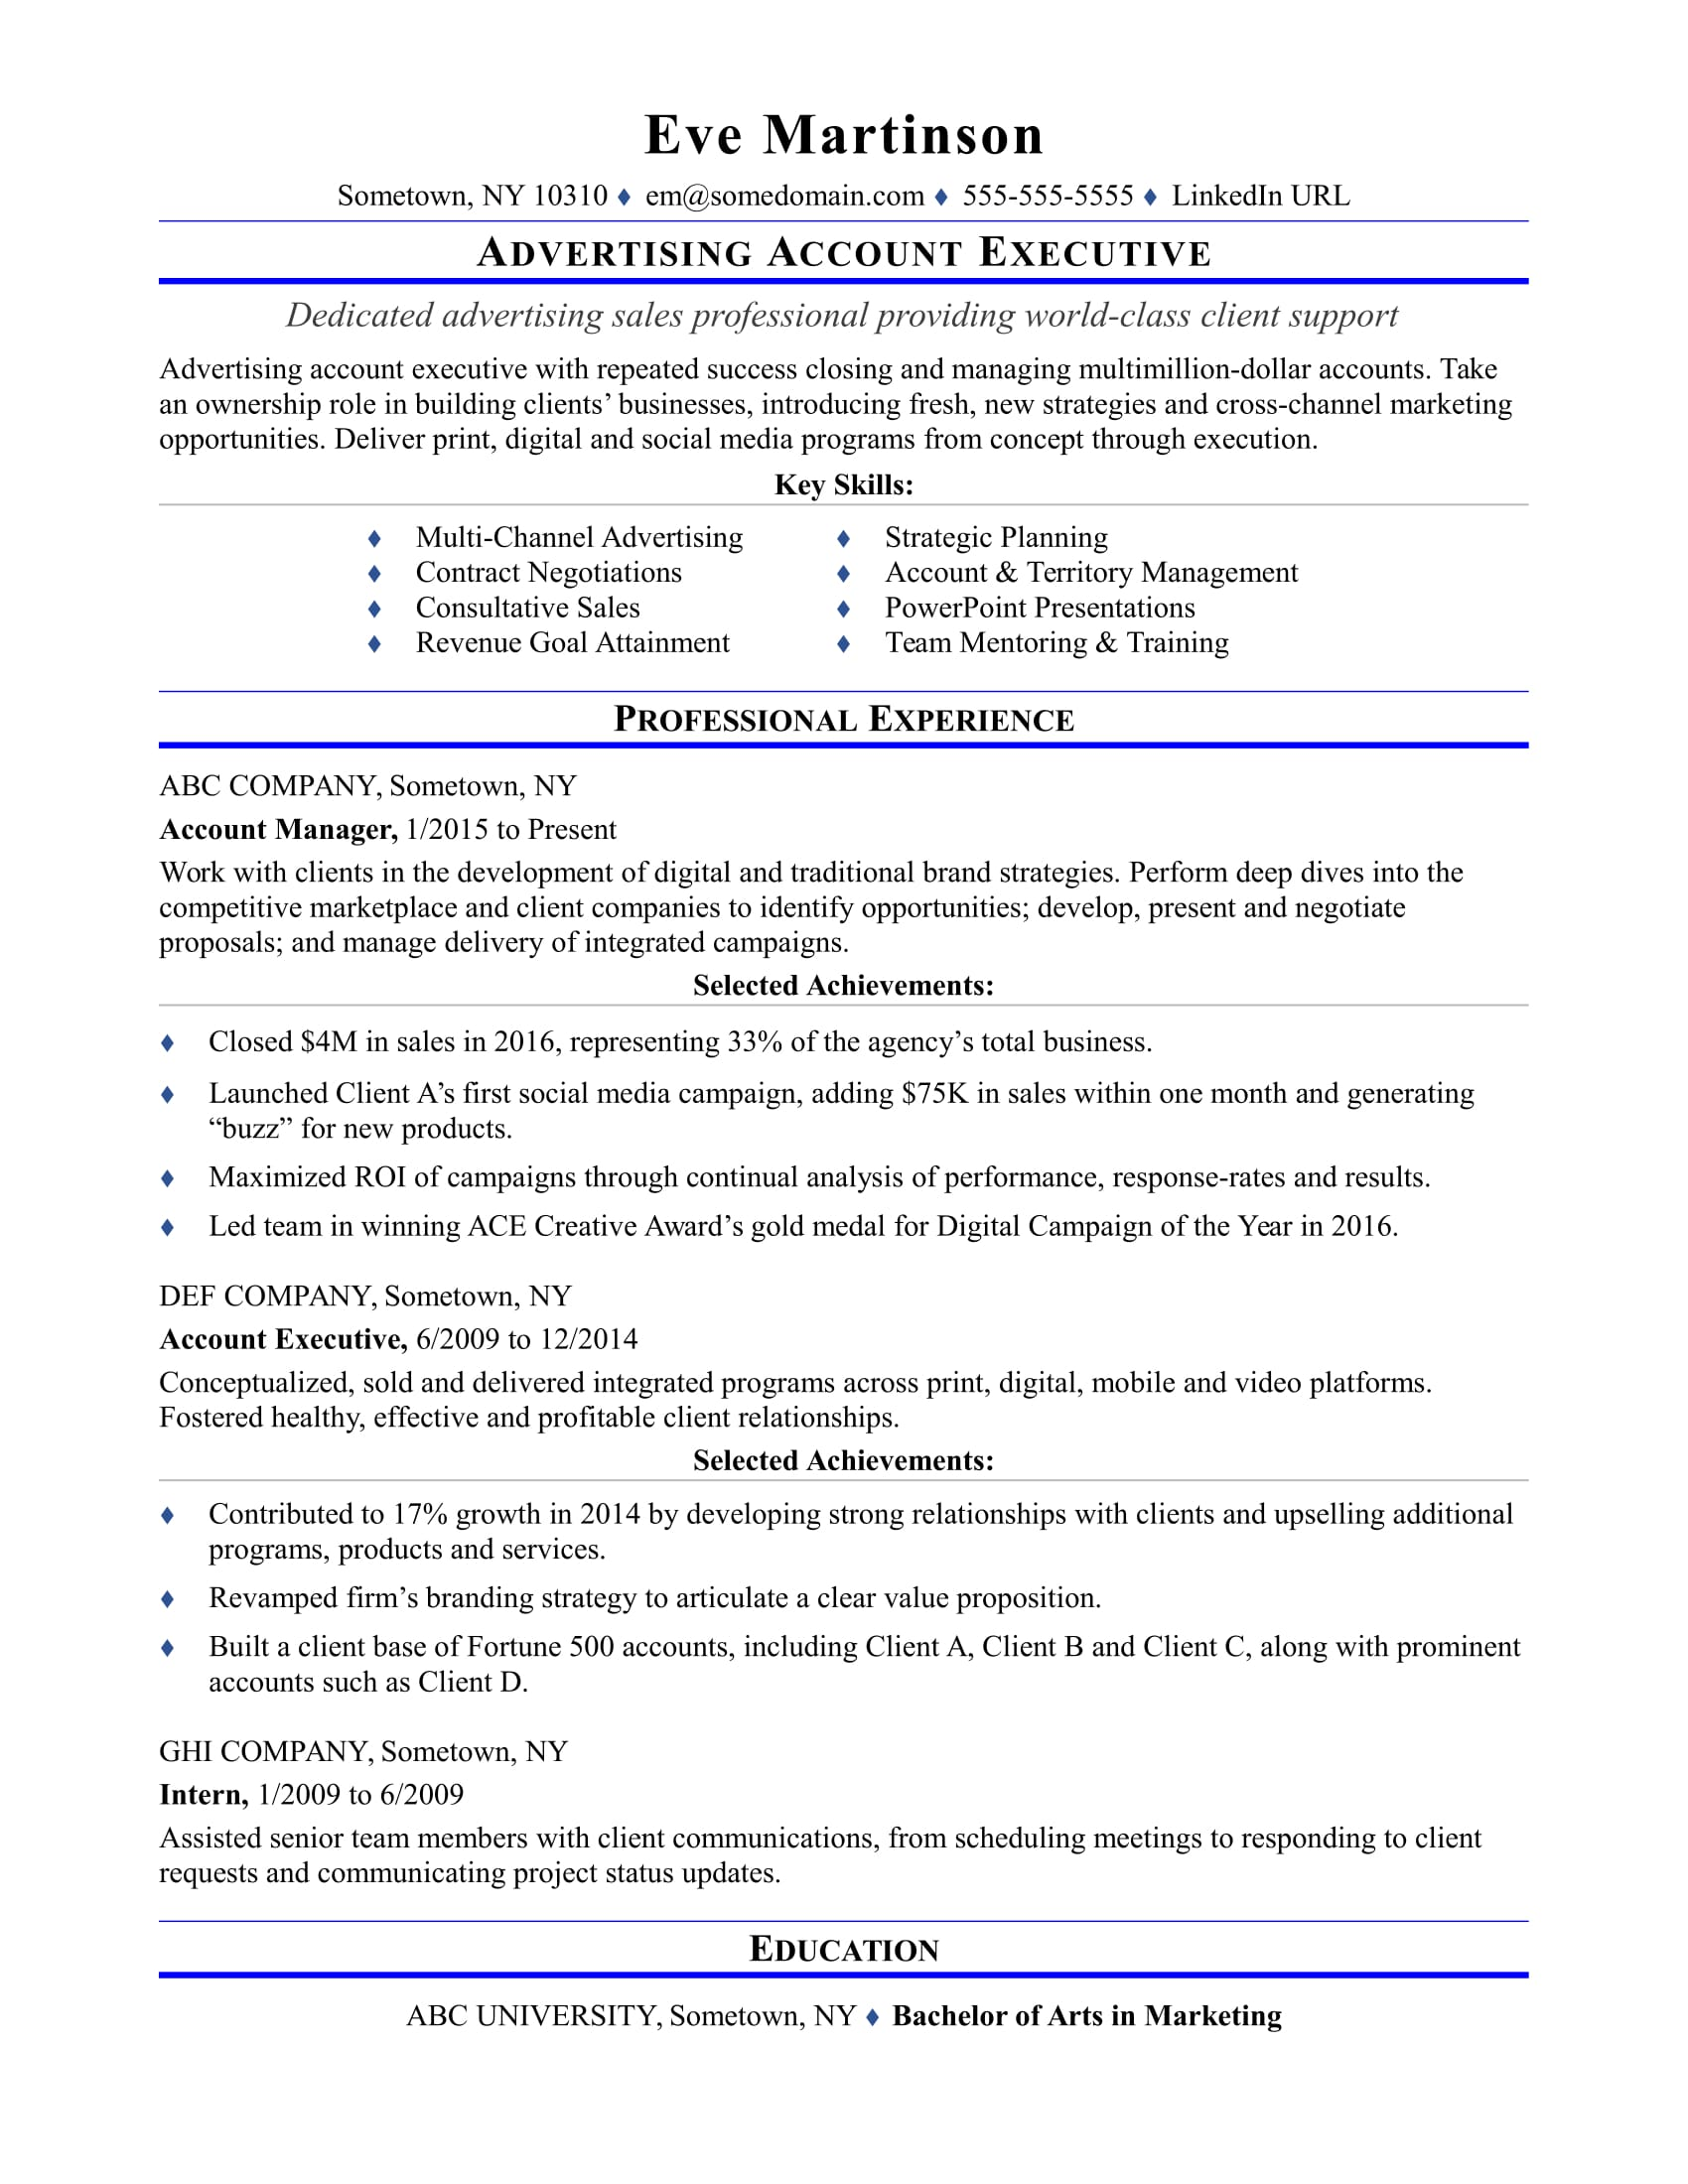 High Quality Sample Resume For An Advertising Account Executive With Advertising Resume